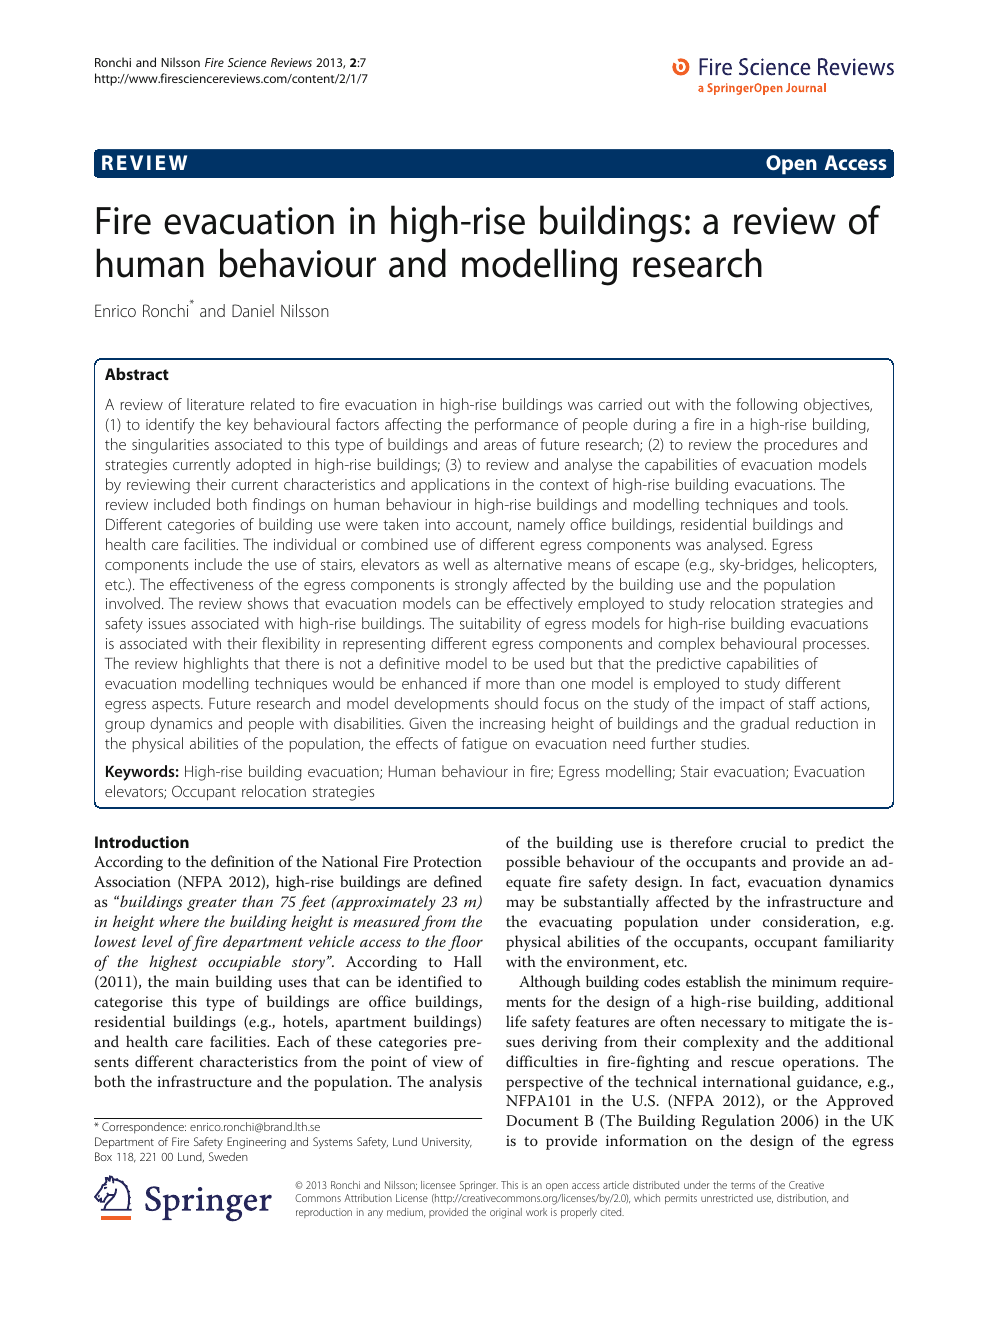 Fire evacuation in high-rise buildings: a review of human